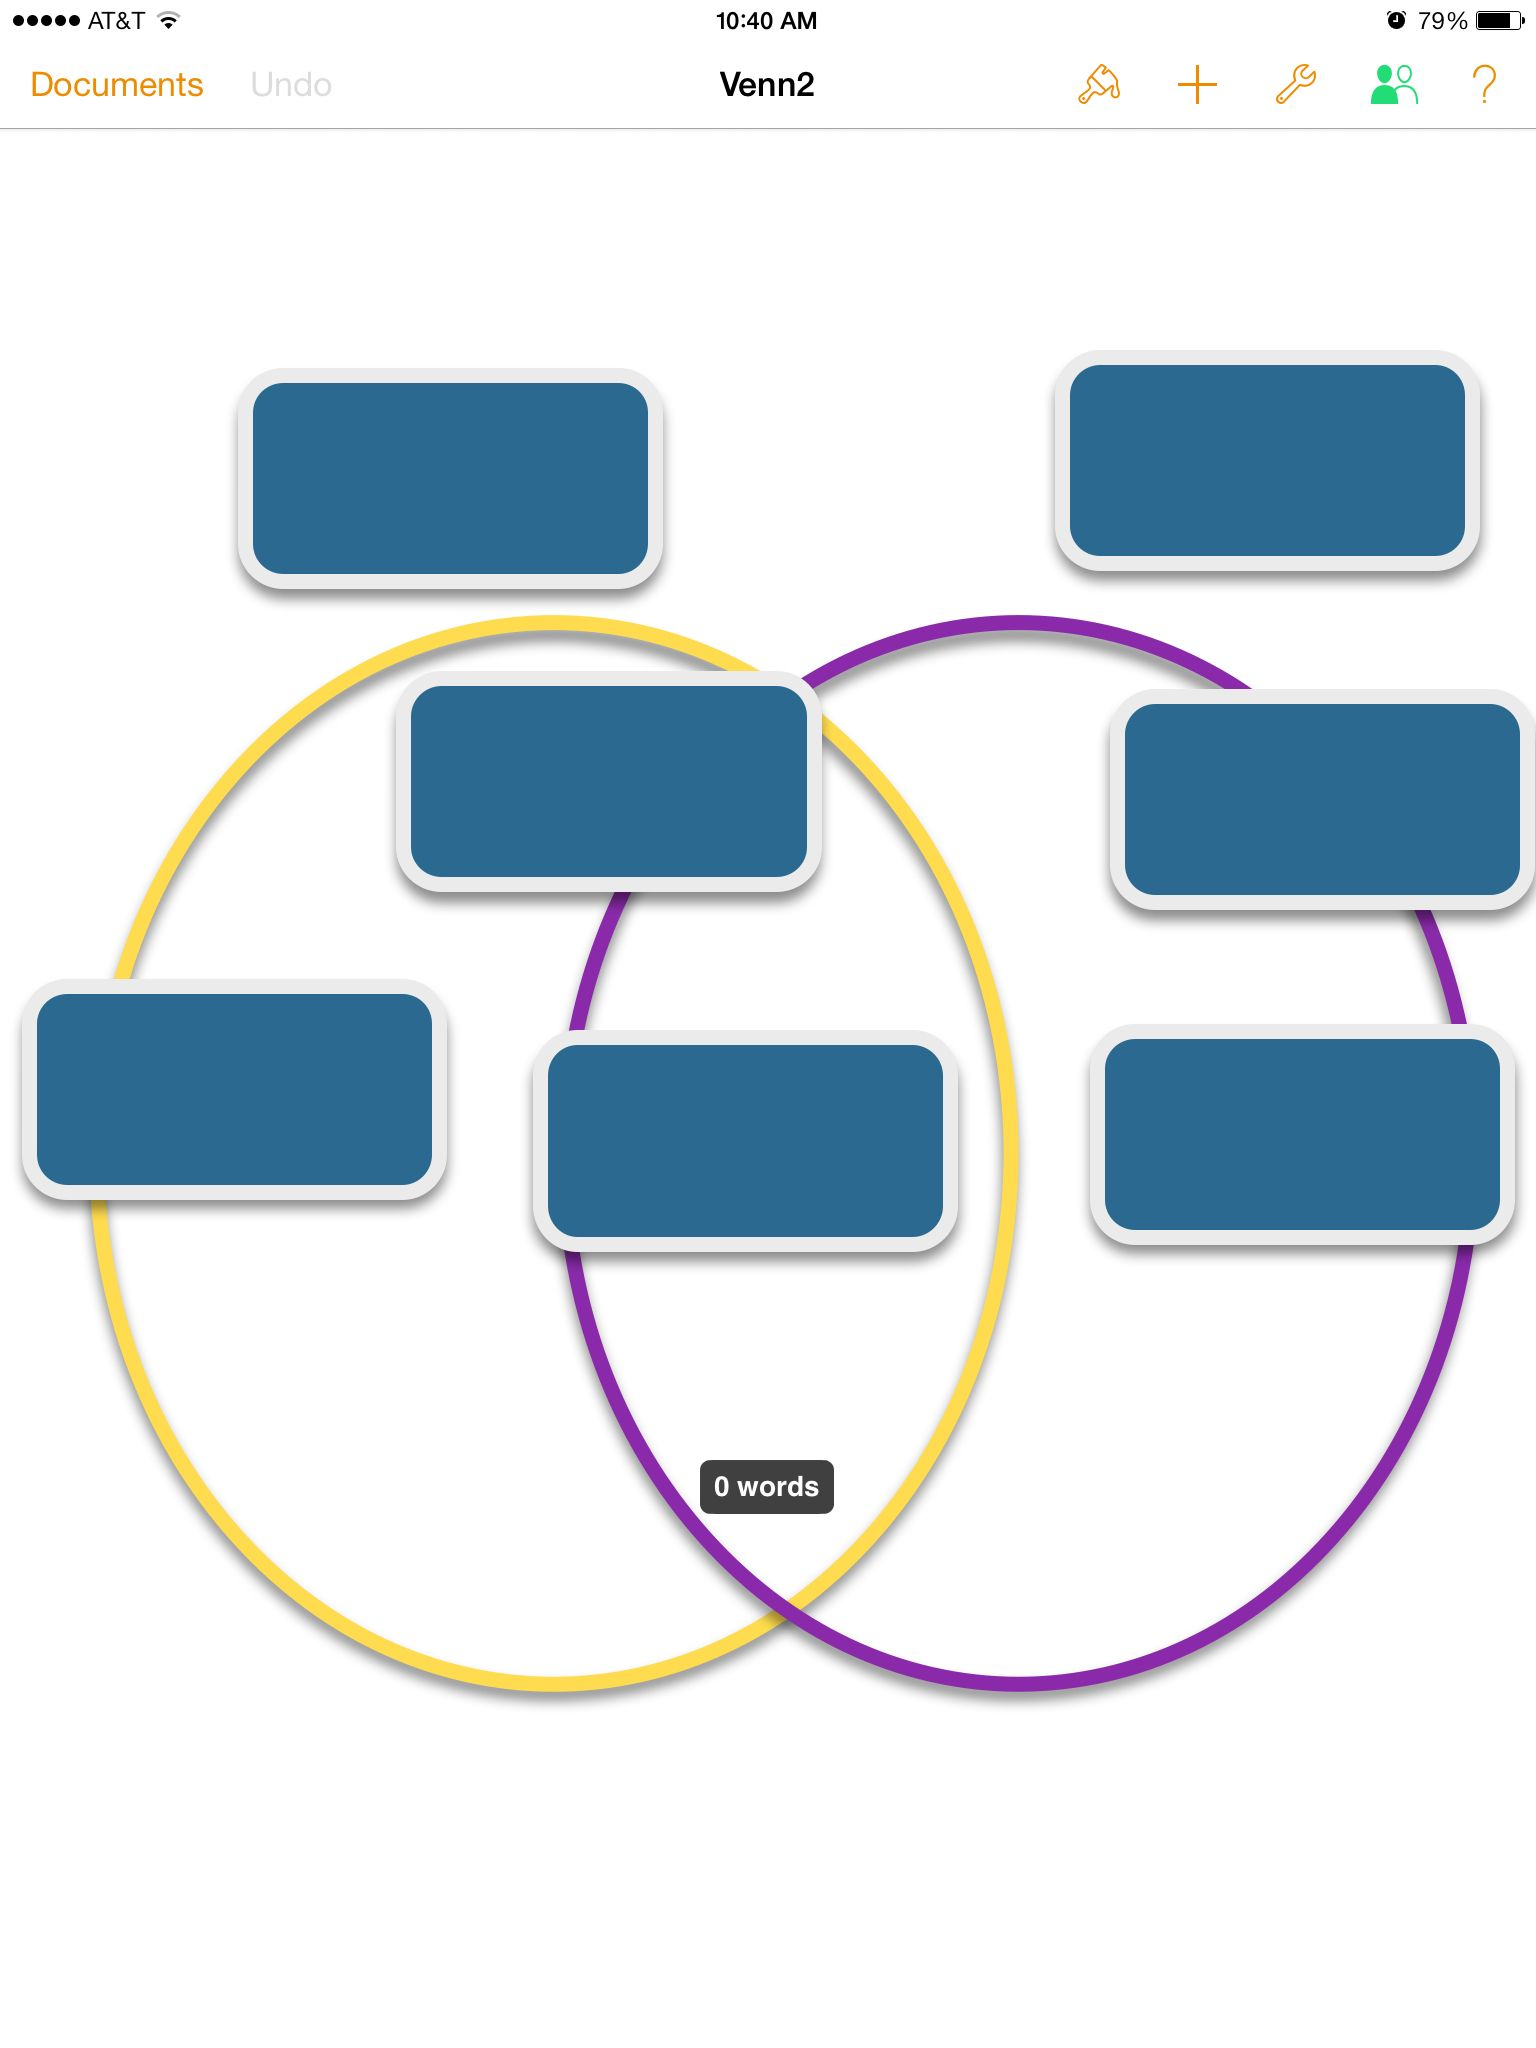 Venn Diagram Template For Pages HttpsWwwIcloudComIwPages